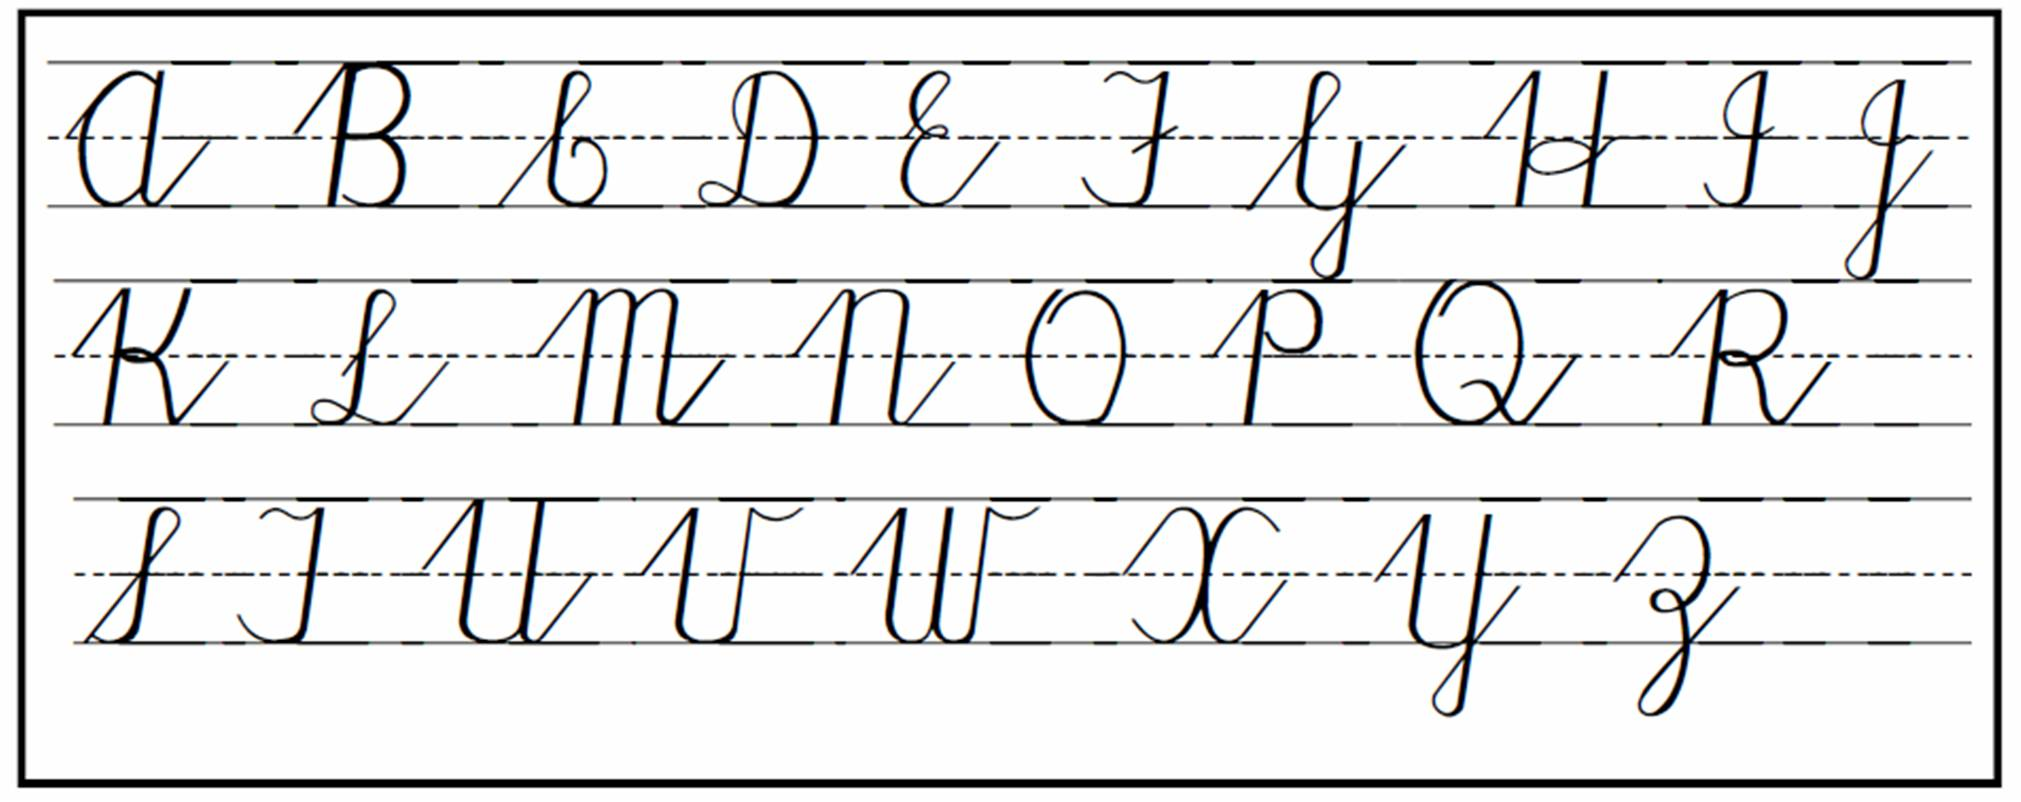 Cursive Handwriting Step By Step For Beginners